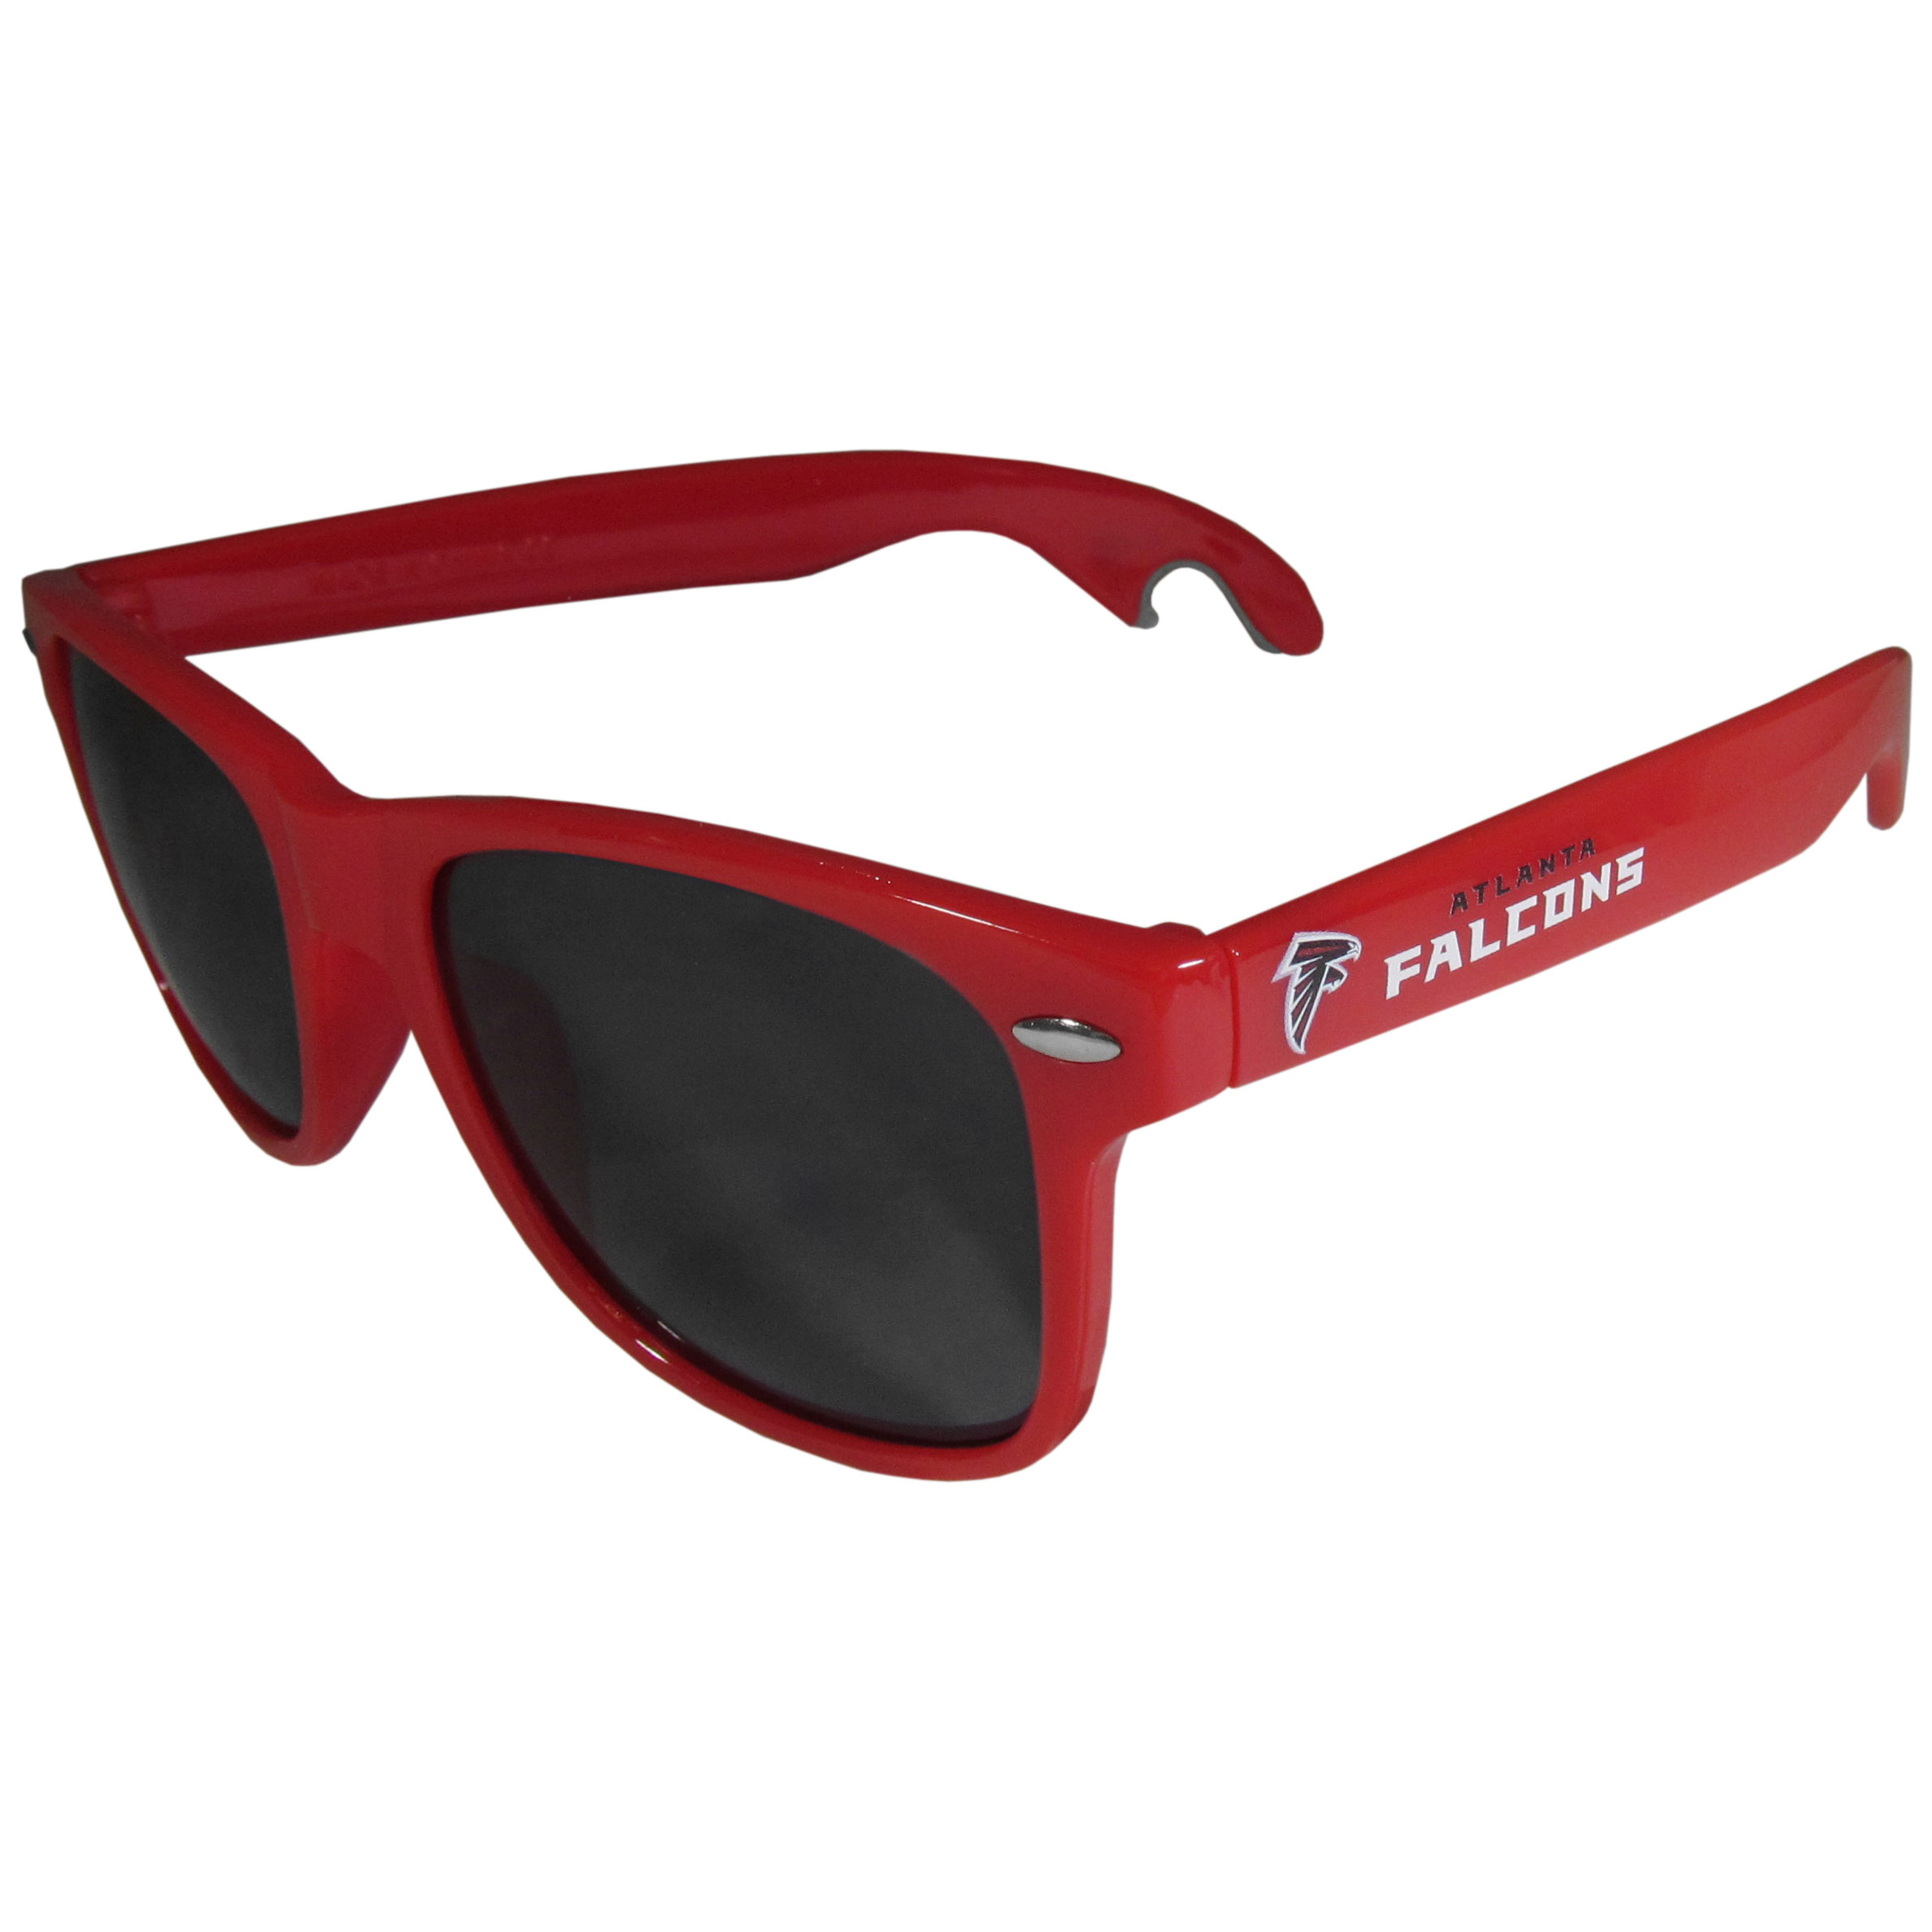 Atlanta Falcons Beachfarer Bottle Opener Sunglasses, Red - Seriously, these sunglasses open bottles! Keep the party going with these amazing Atlanta Falcons bottle opener sunglasses. The stylish retro frames feature team designs on the arms and functional bottle openers on the end of the arms. Whether you are at the beach or having a backyard BBQ on game day, these shades will keep your eyes protected with 100% UVA/UVB protection and keep you hydrated with the handy bottle opener arms.